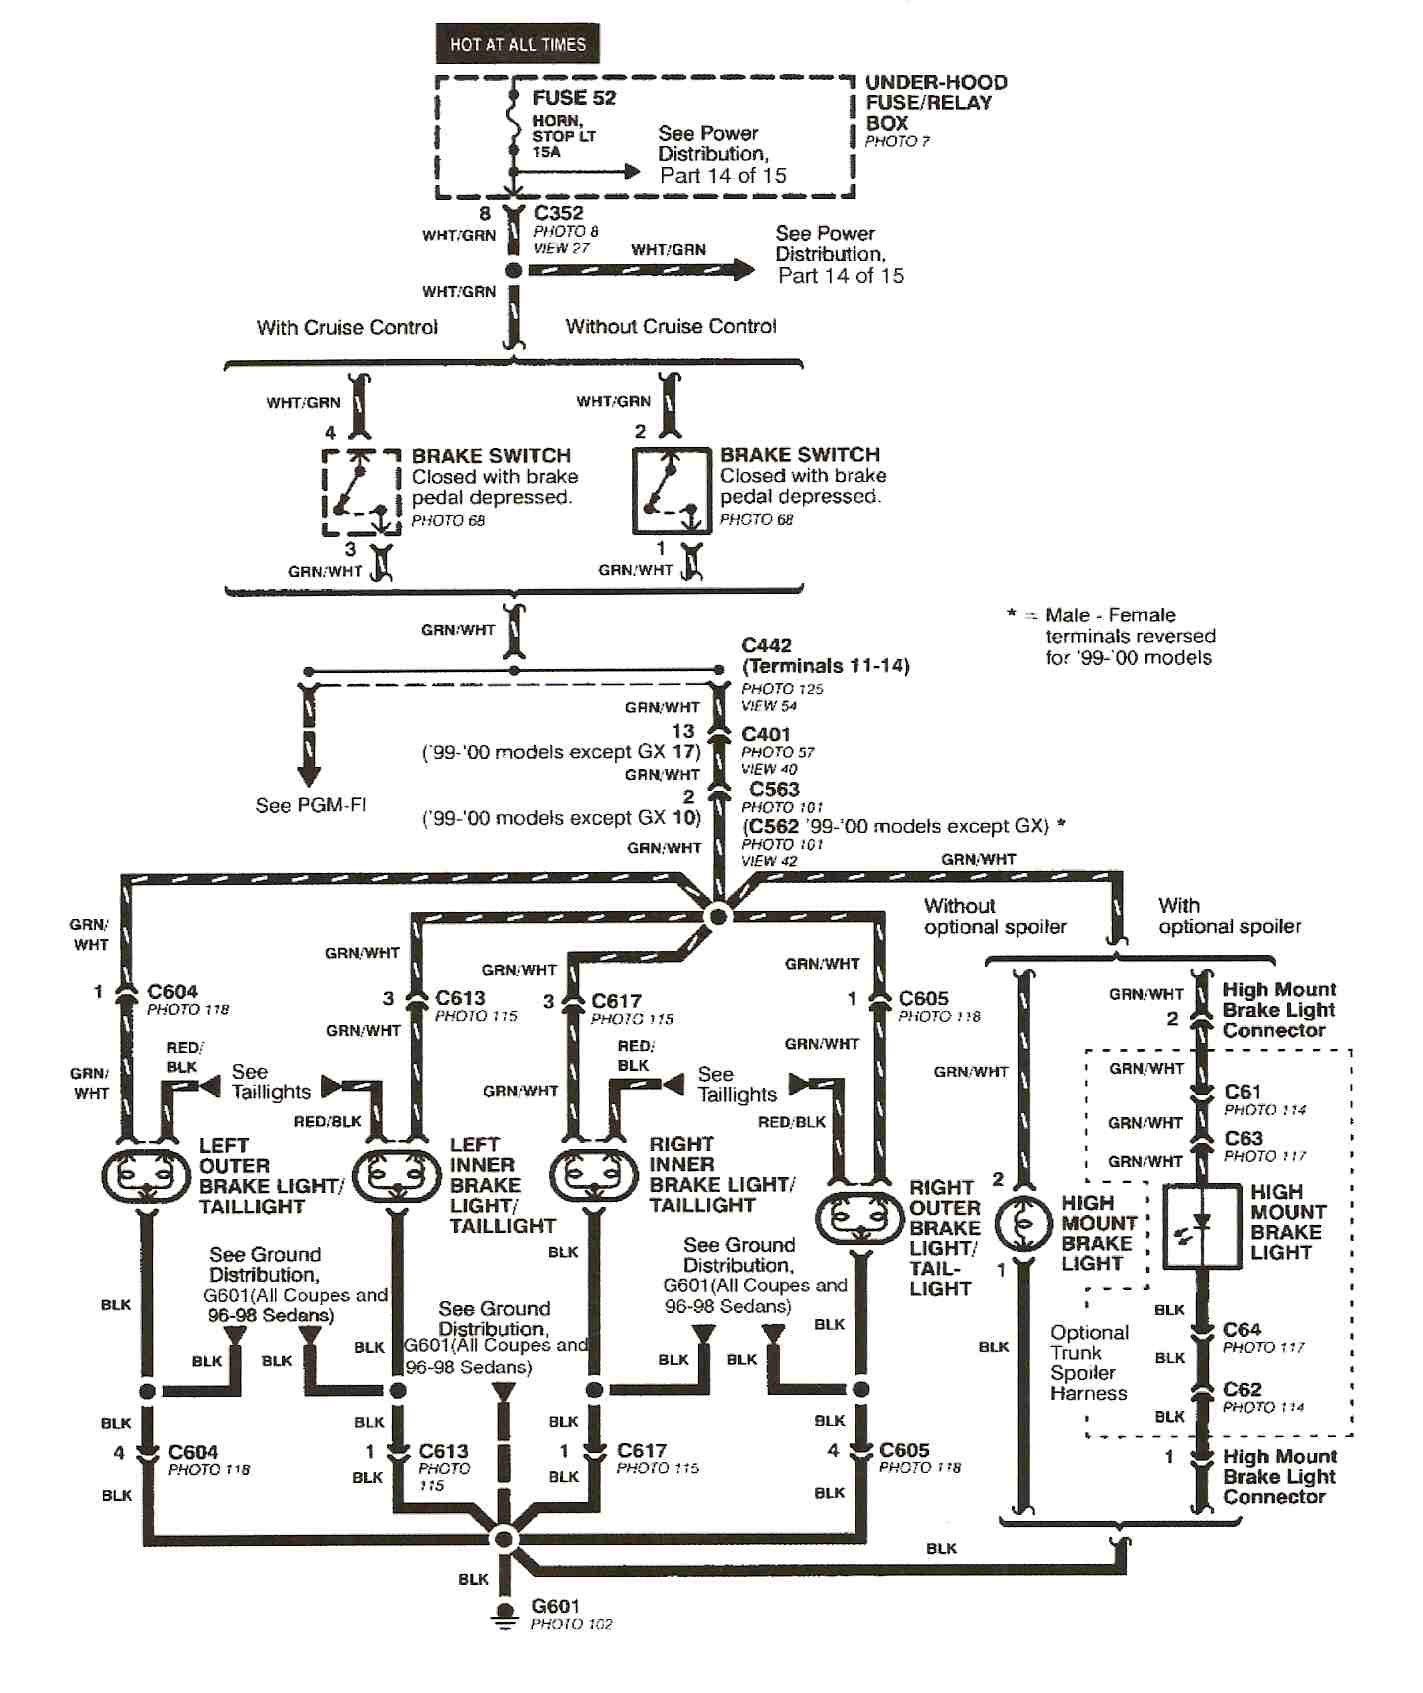 wiring diagram for tail lights on 2001 honda accord trusted wiring tail  light wire colors 2001